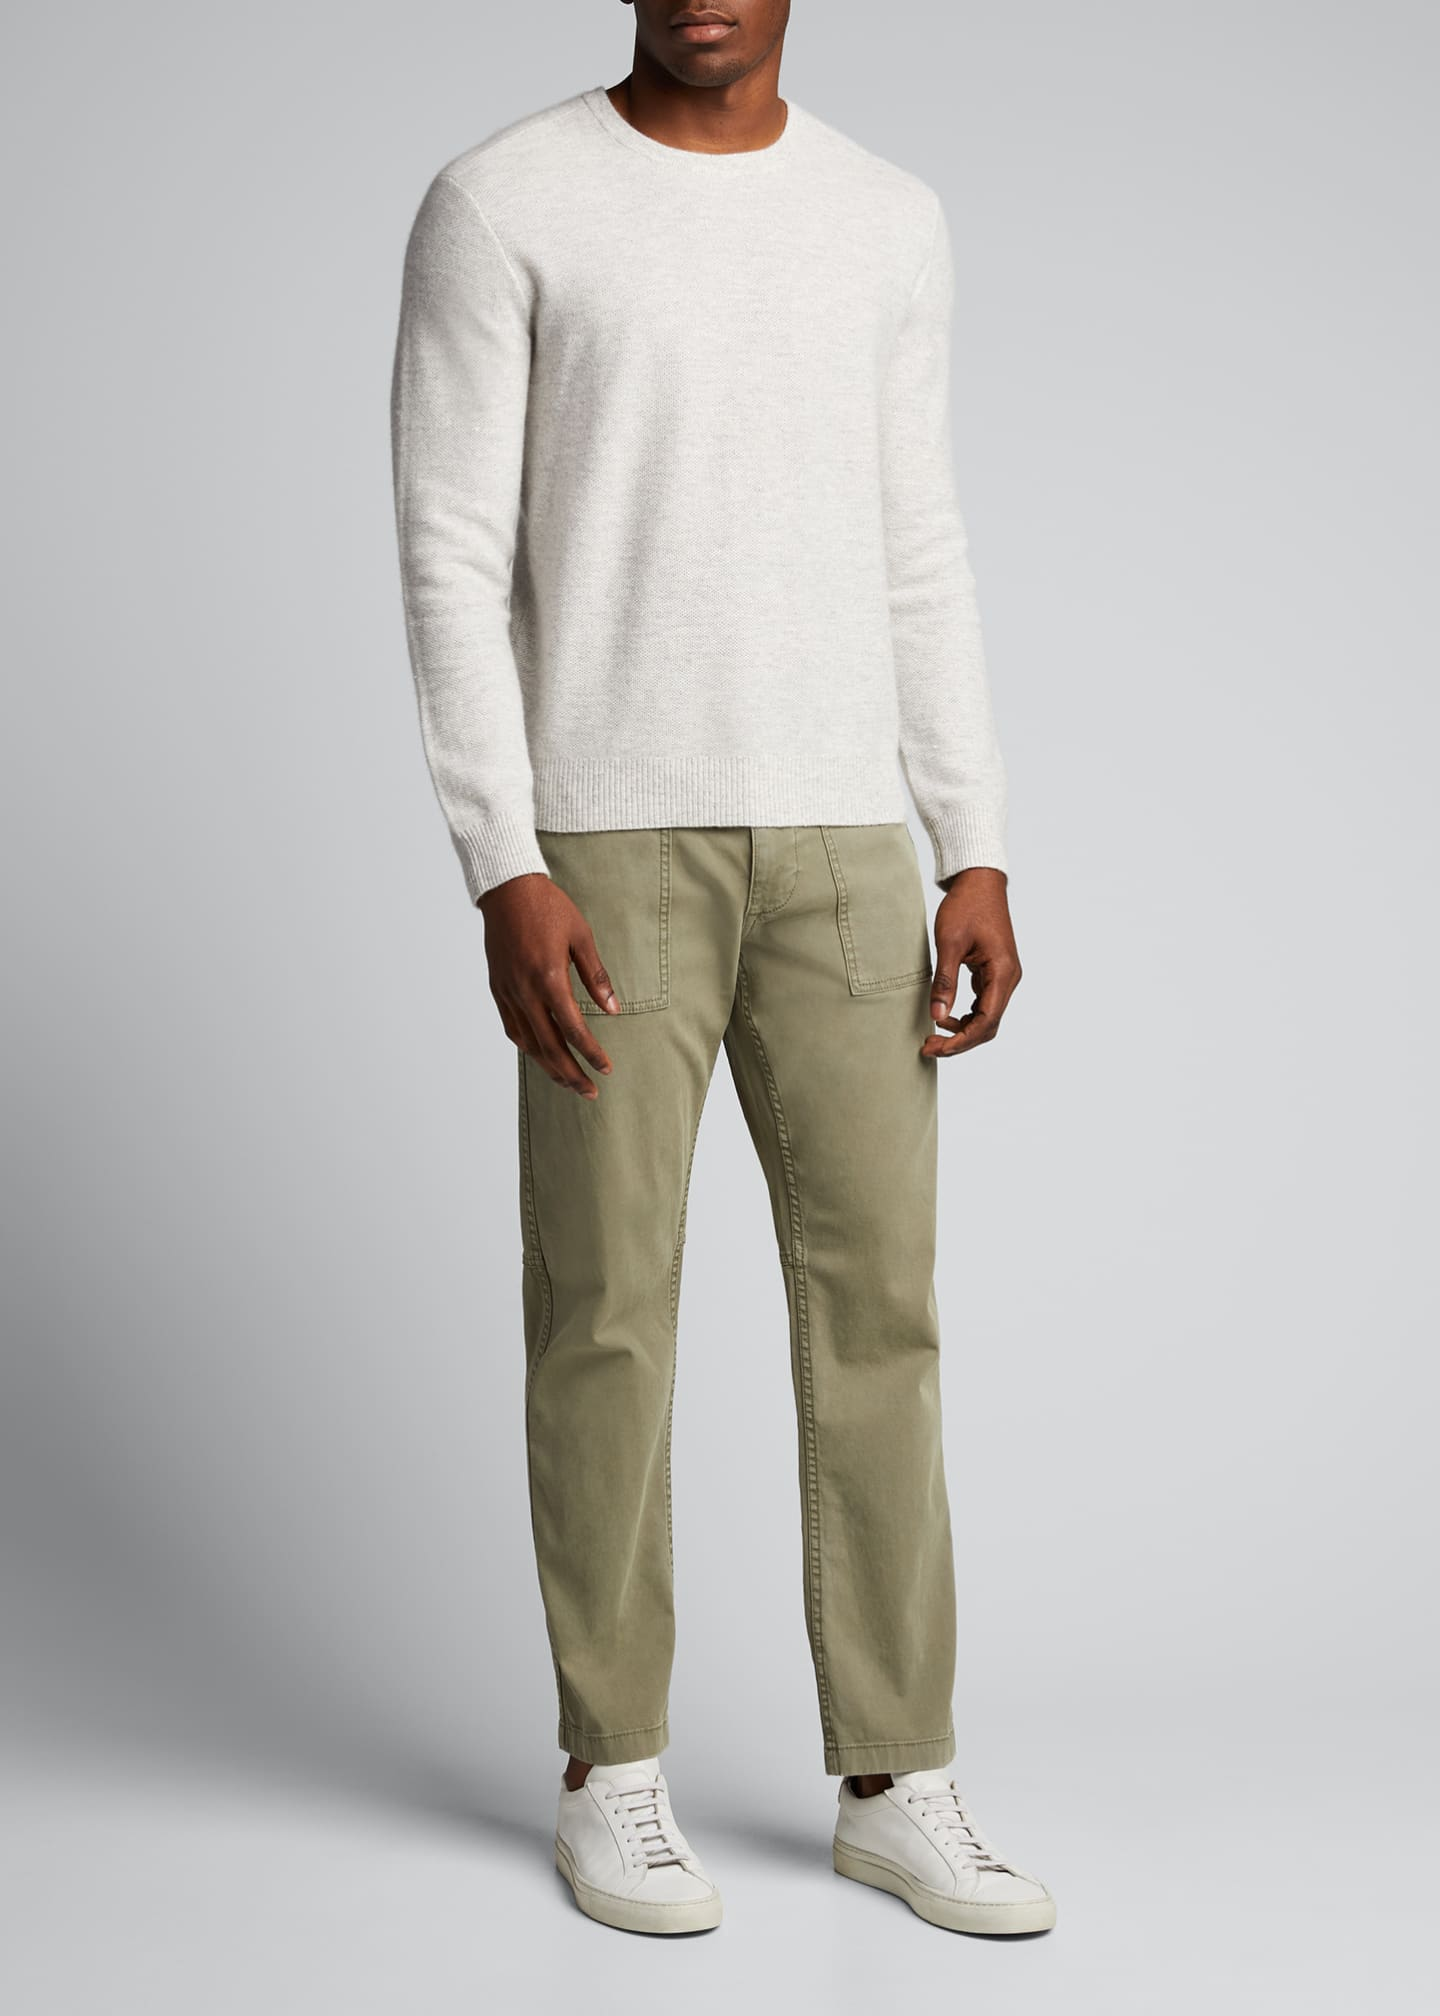 Men's Tuck-Stitch Sweater